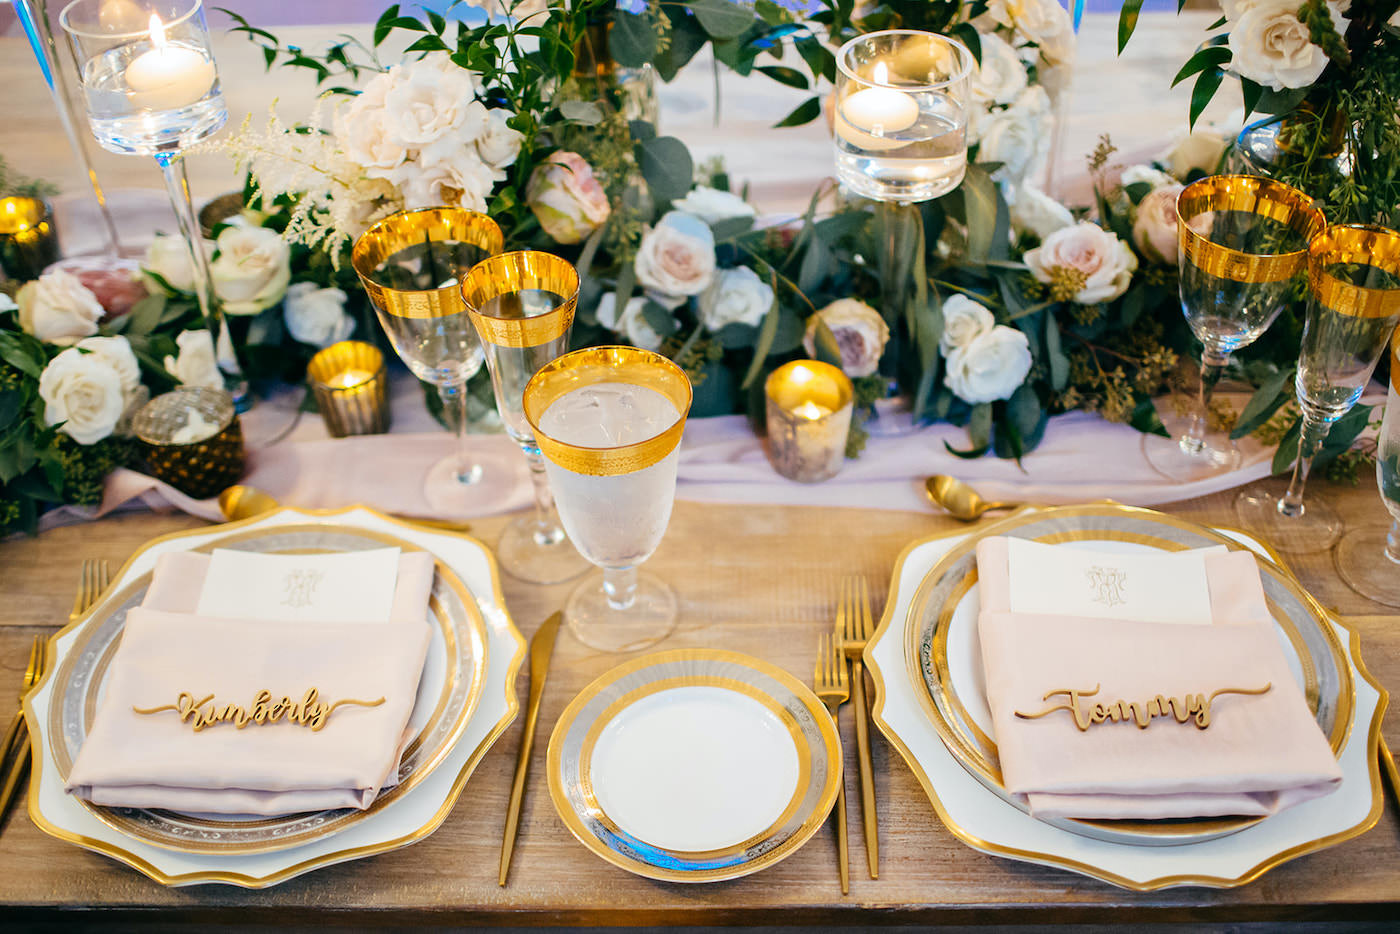 Elegant Florida Wedding Decor and Reception, Acrylic Place Setting Name Cards   Luxurious Blush Pink Florals and Greenery, Gold Table Setting Accents   Sarasota Wedding Planner NK Weddings   Marie Selby Botanical Gardens